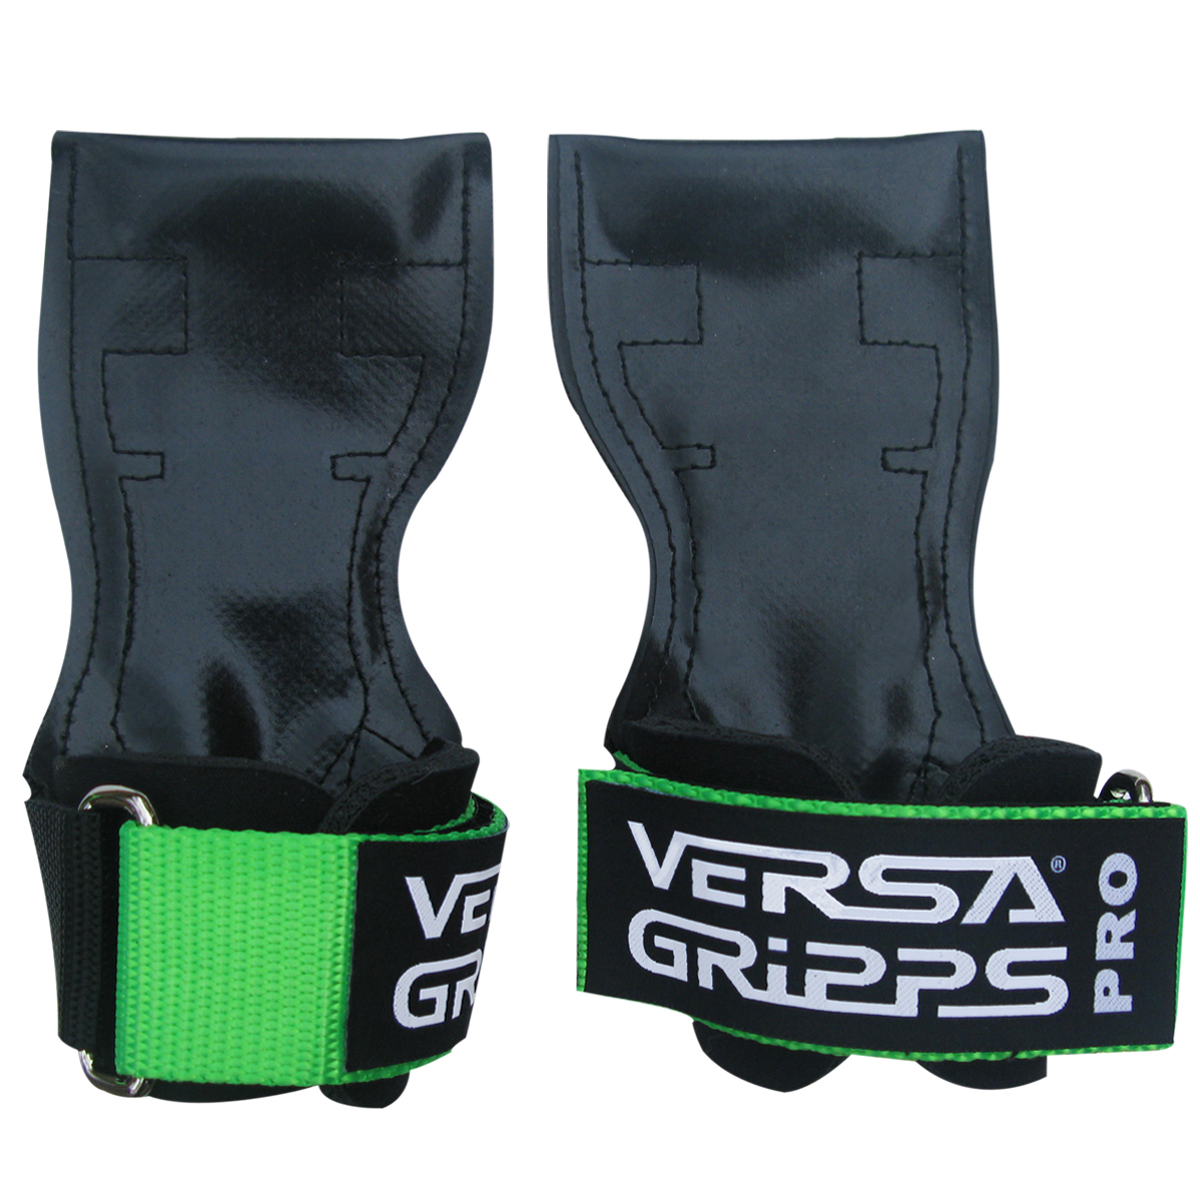 VERSA GRIPPS PRO Authentic. The Best Training Accessory in the World MADE IN THE USA Outperforms Gloves Weight Lifting... by Versa Gripps USA (Power Gripps USA, INC.)